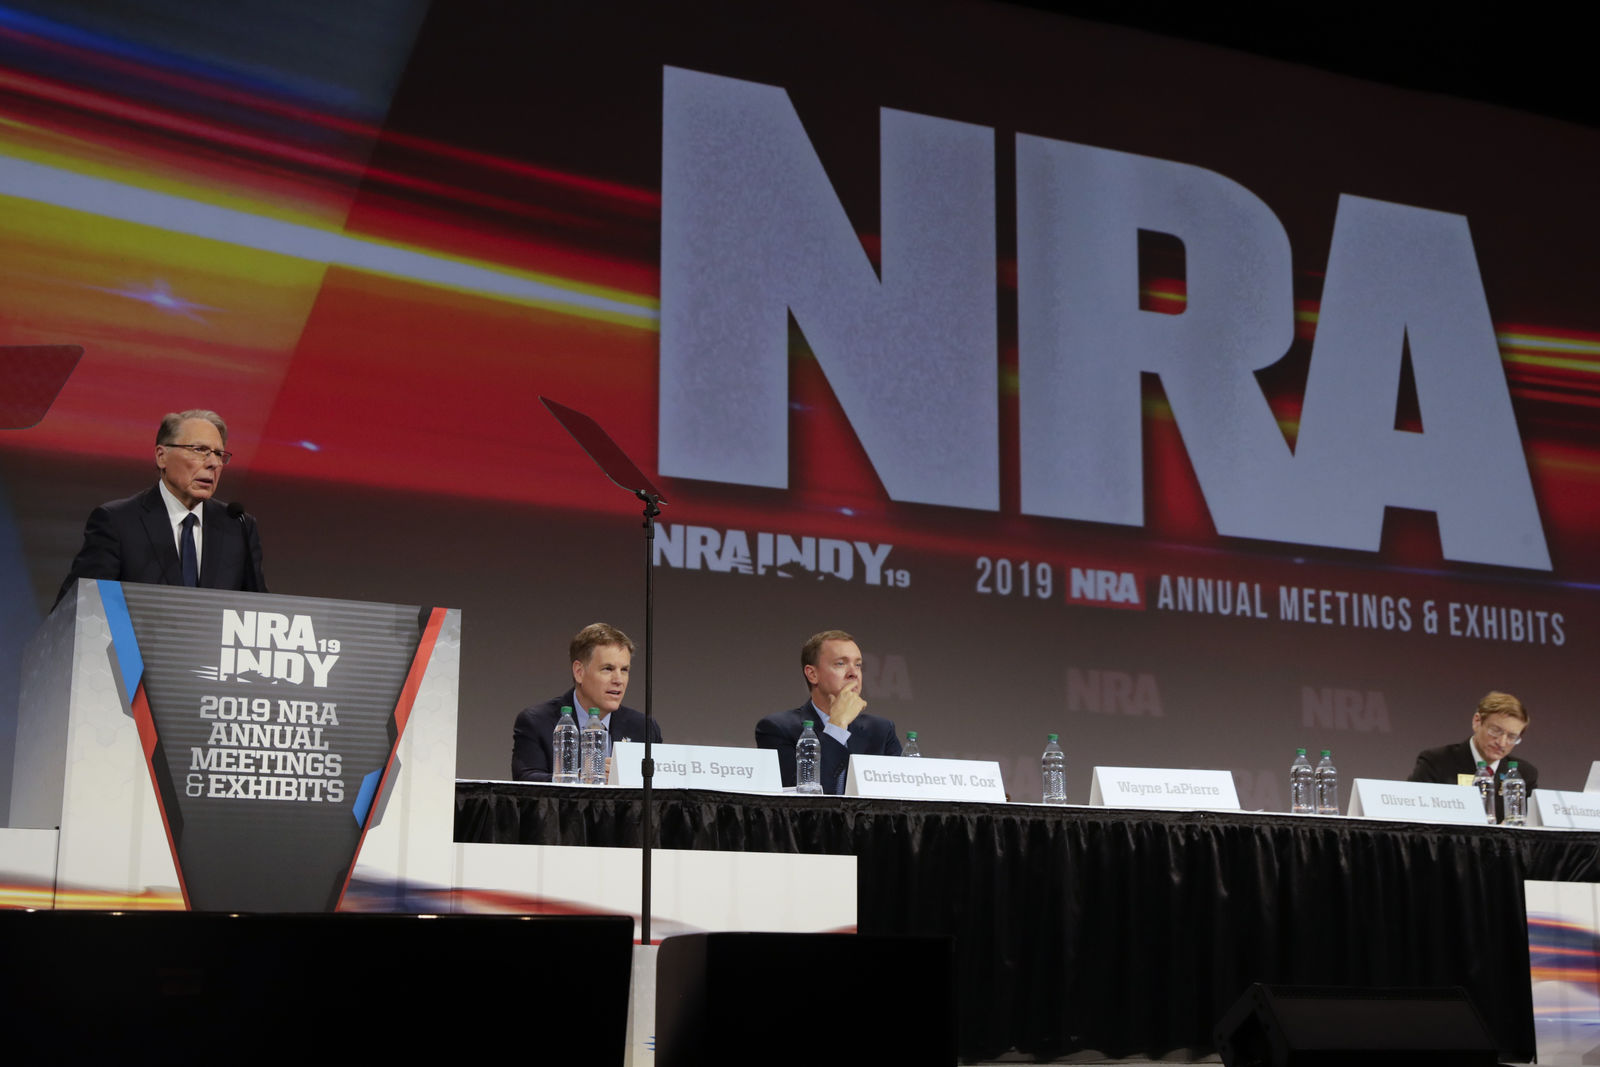 National Rifle Association Executive Vice President Wayne LaPierre speaks at the NRA Annual Meeting of Members in Indianapolis, Saturday, April 27, 2019. On Saturday, retired Lt. Col. Oliver North has announced that he will not serve a second term as president of the NRA amid inner turmoil in the gun-rights group. (AP Photo/Michael Conroy)